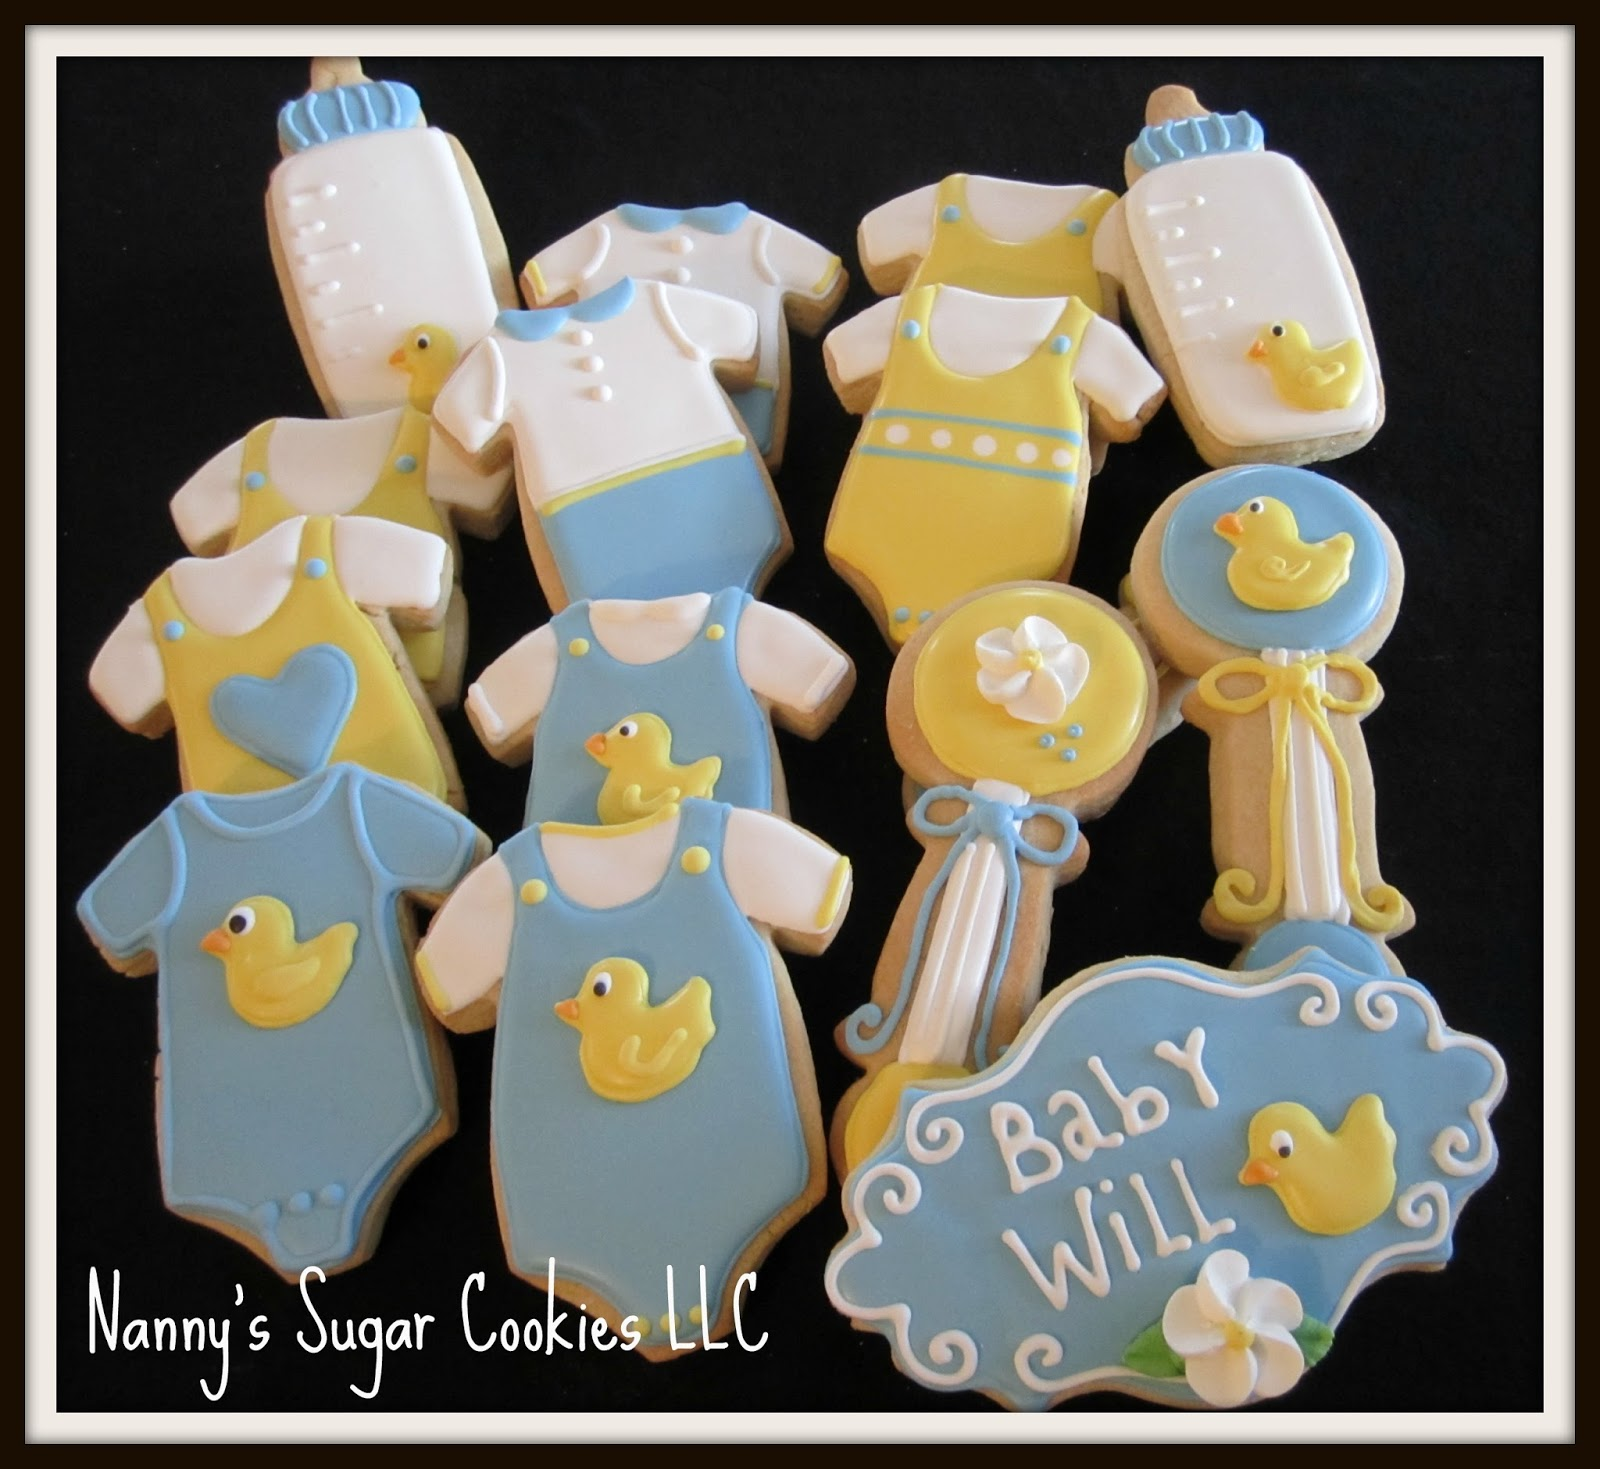 Nanny's Sugar Cookies LLC: Cookie Favors For A Baby Shower